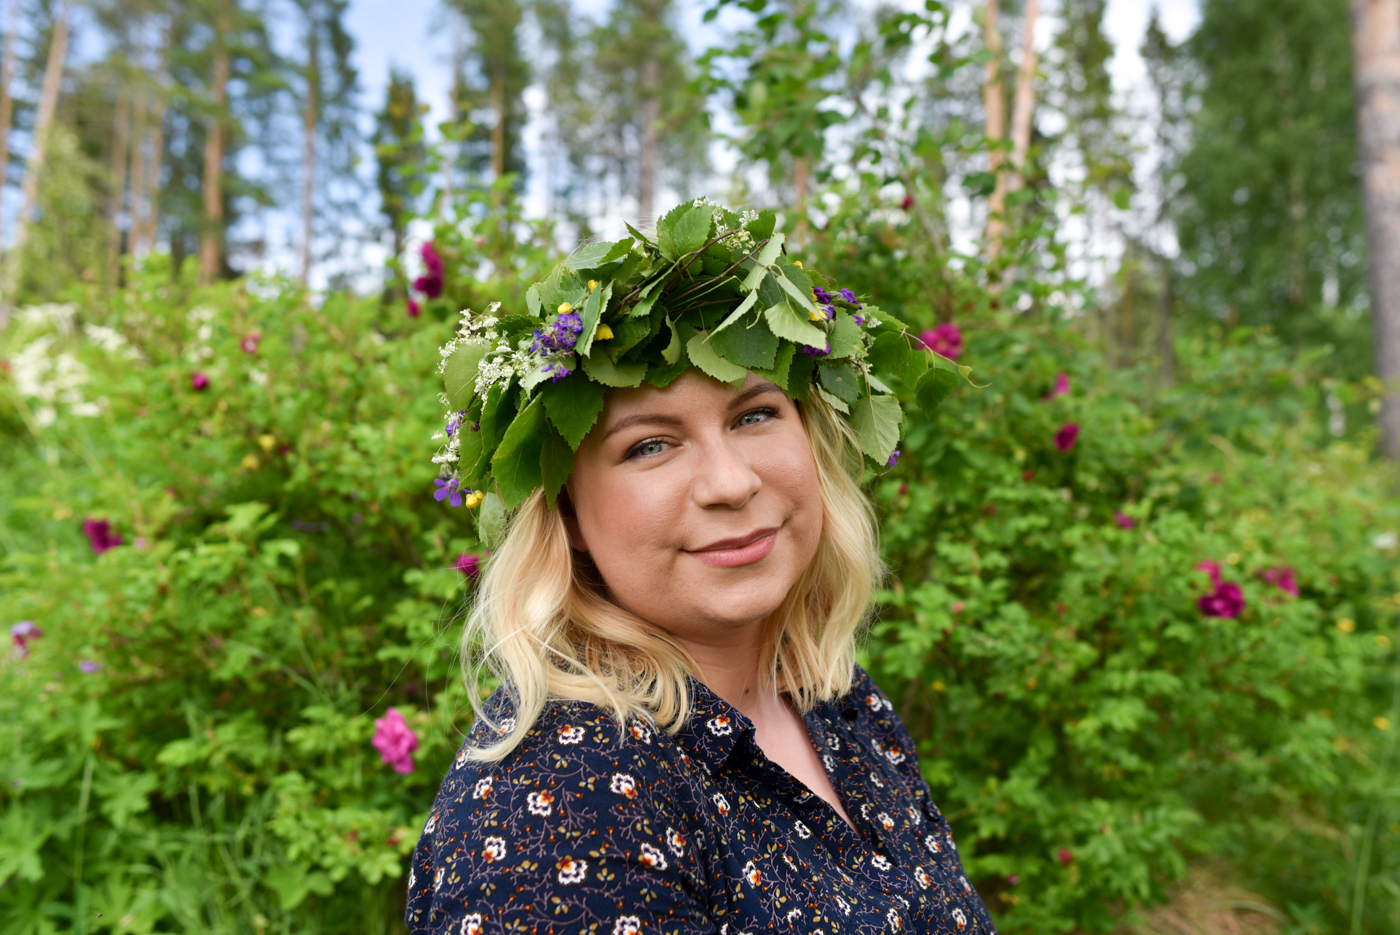 Celebrating Midsummer in Sweden